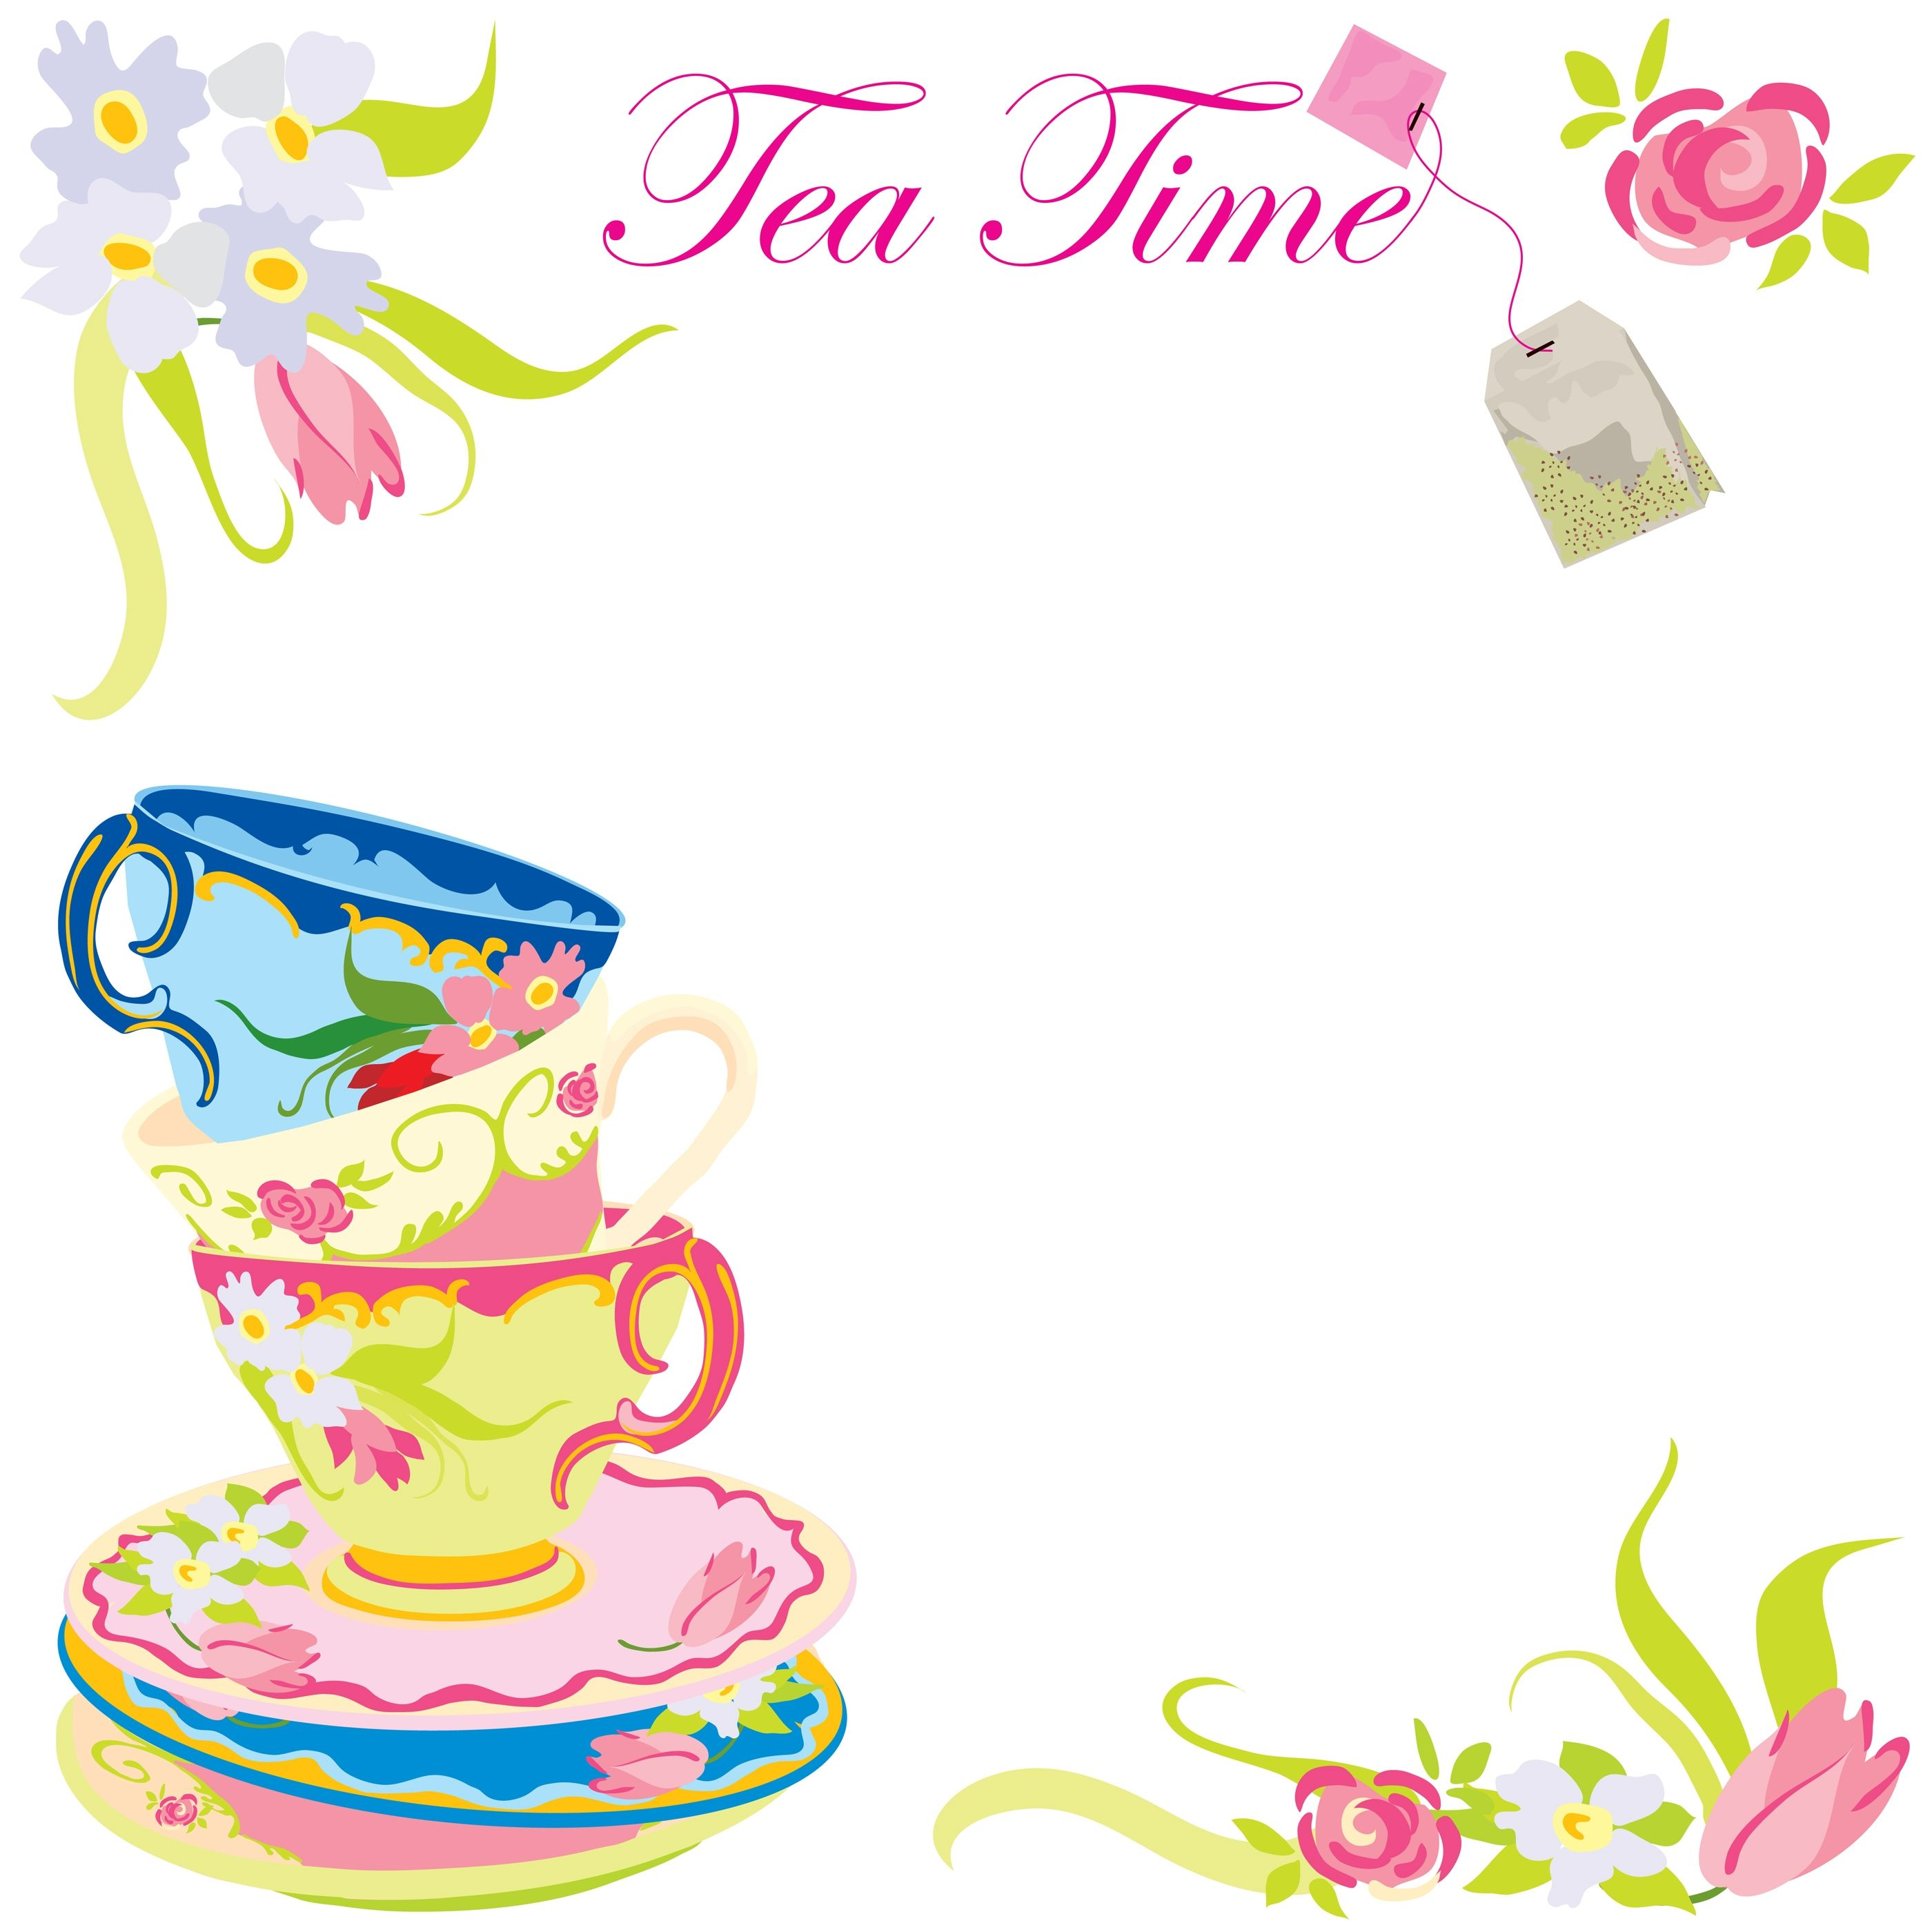 How To Create Tea Party Birthday Invitations Designs With Looking ...